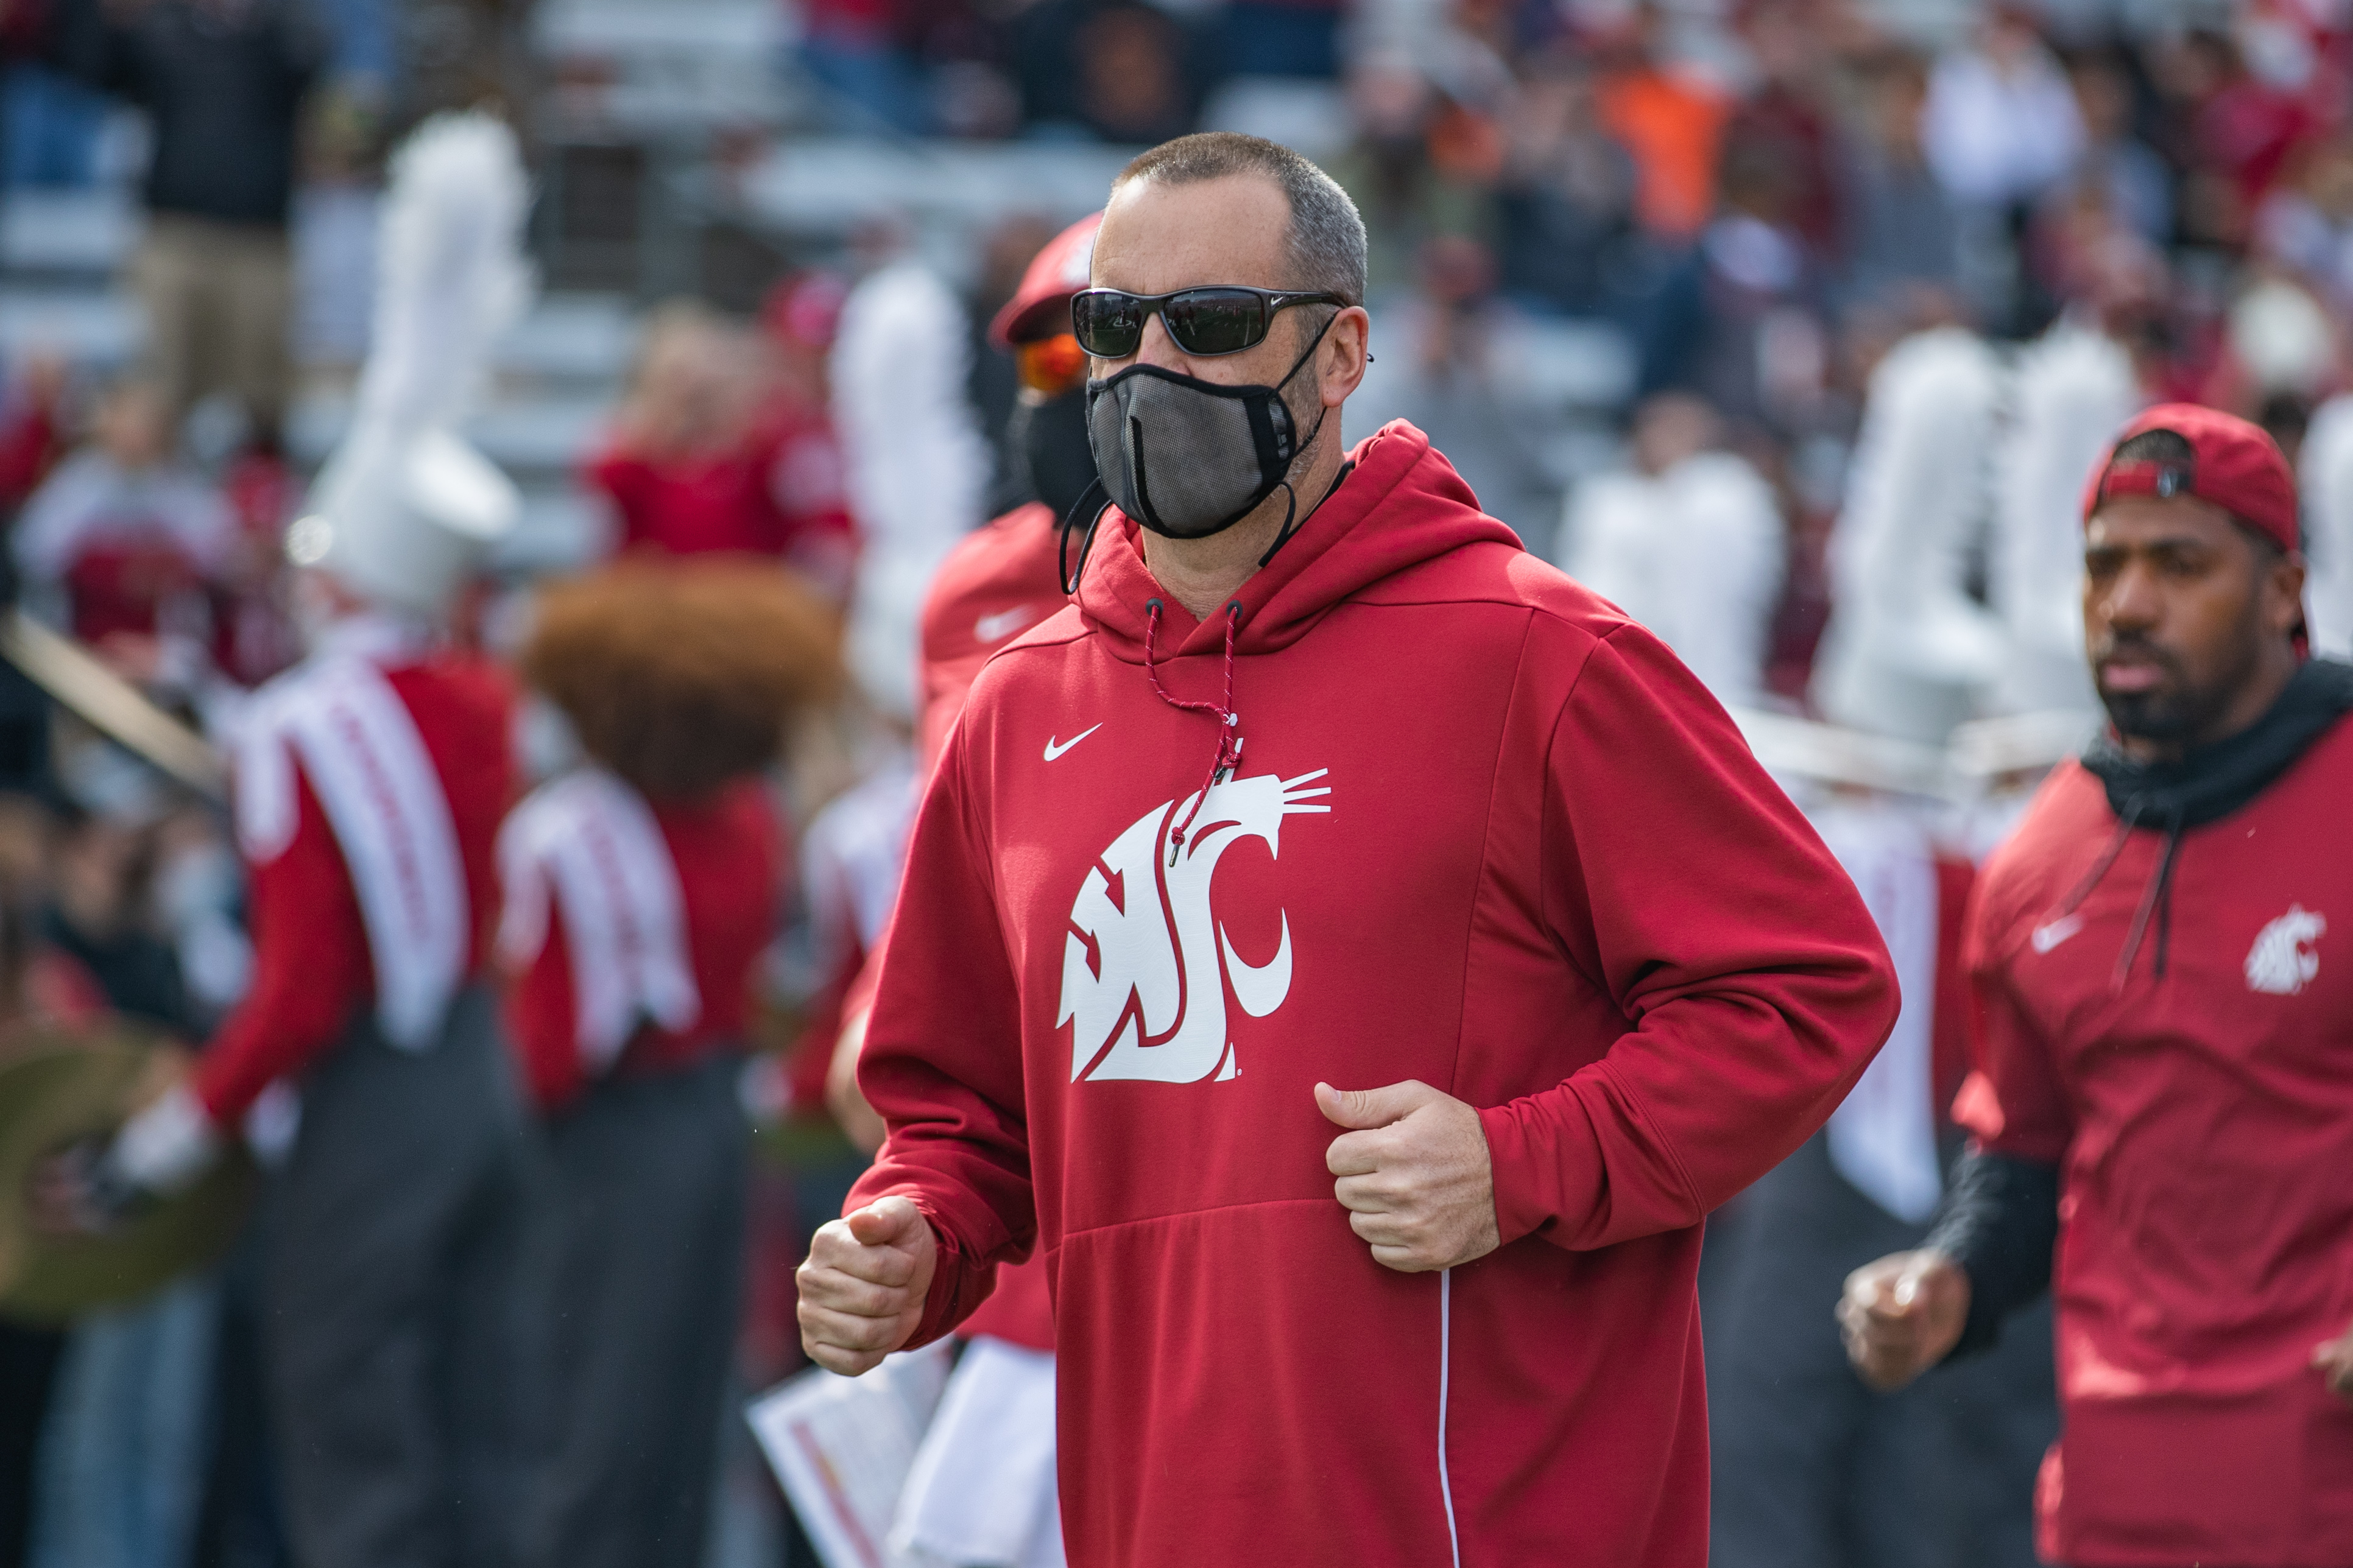 PULLMAN, WA - OCTOBER 9: Washington State head coach Nick Rolovich runs out of the tunnel prior to a PAC 12 conference matchup between the Oregon State Beavers and the Washington State Cougars on October 9, 2021, at Martin Stadium in Pullman, WA.